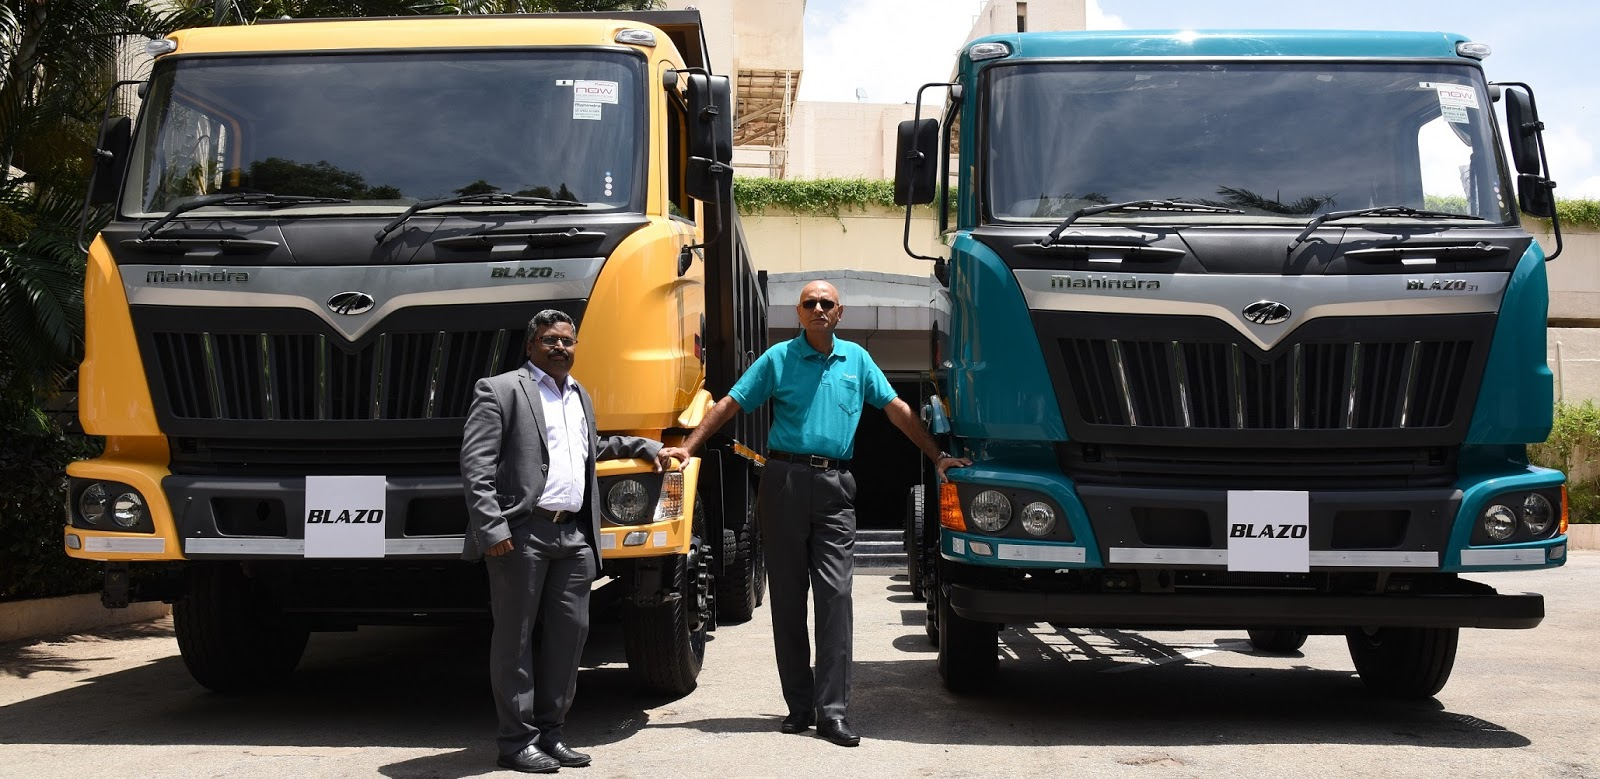 Mr Nalin Mehta Chief Executive Officer Mahindra Truck And Bus Division Ltd At The Launch Of Blozo Trucks In Bengaluru